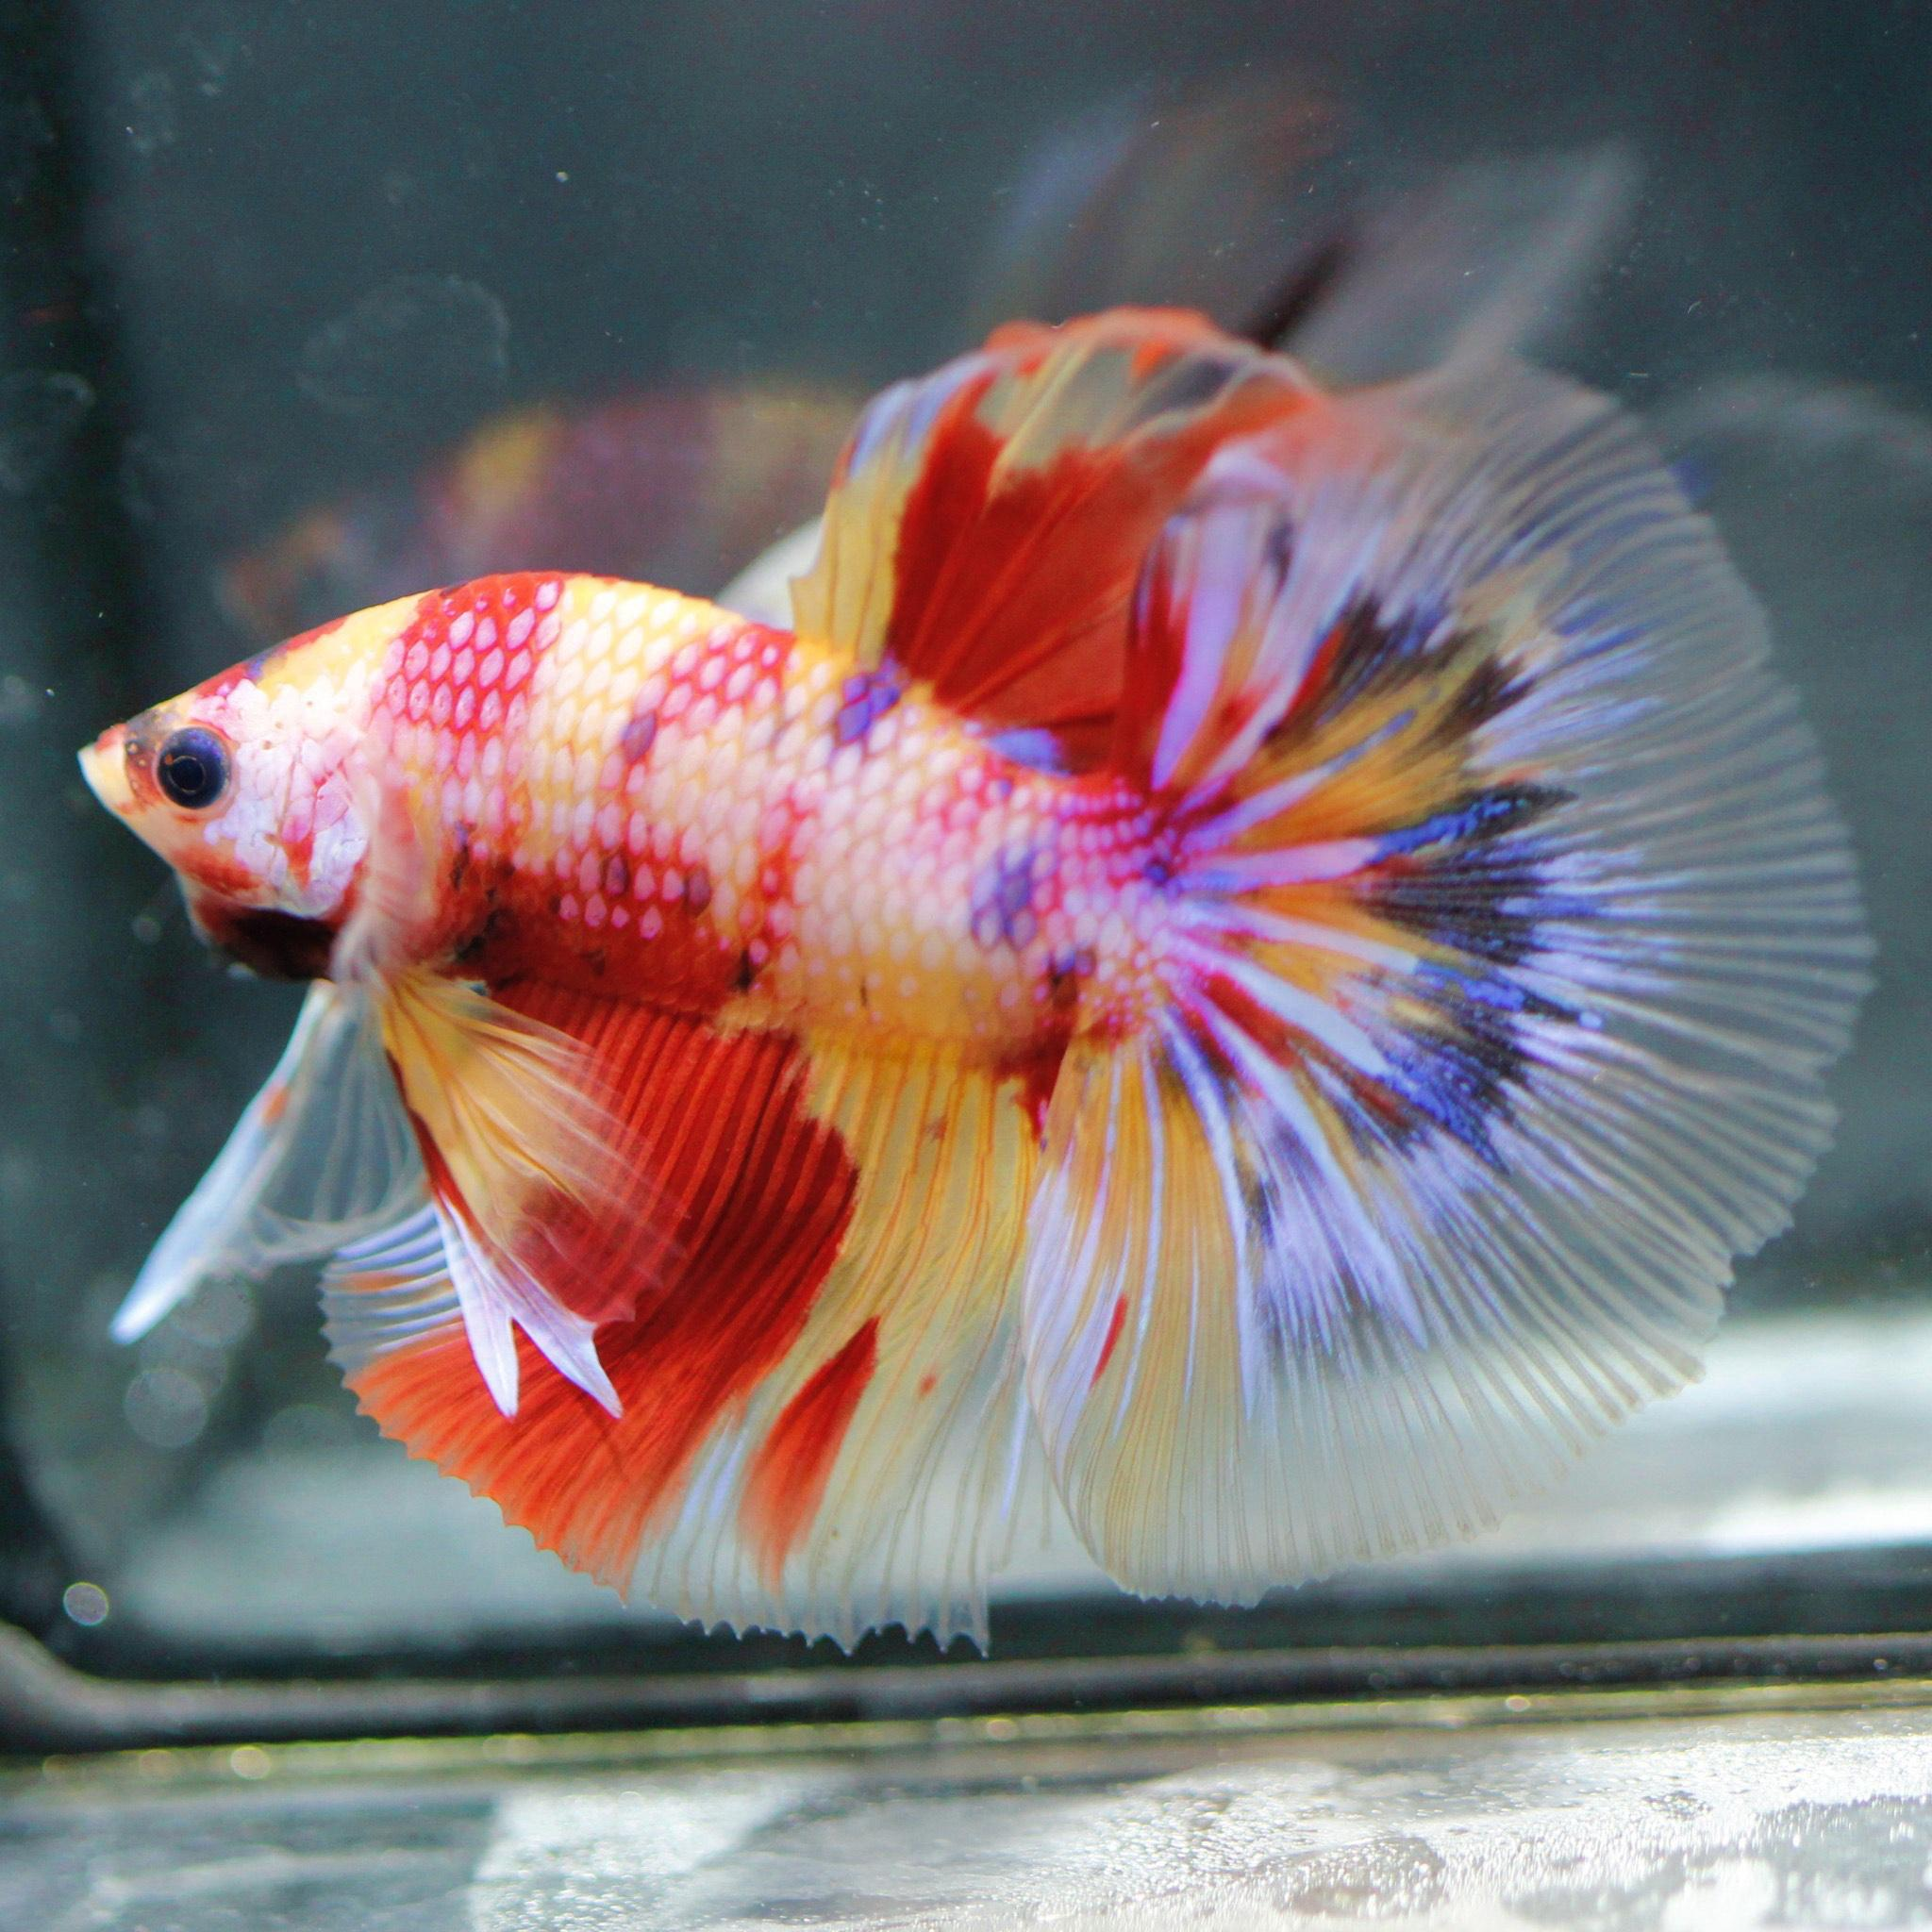 Halfmoon betta fish live Thailand betta farm betta wholesale